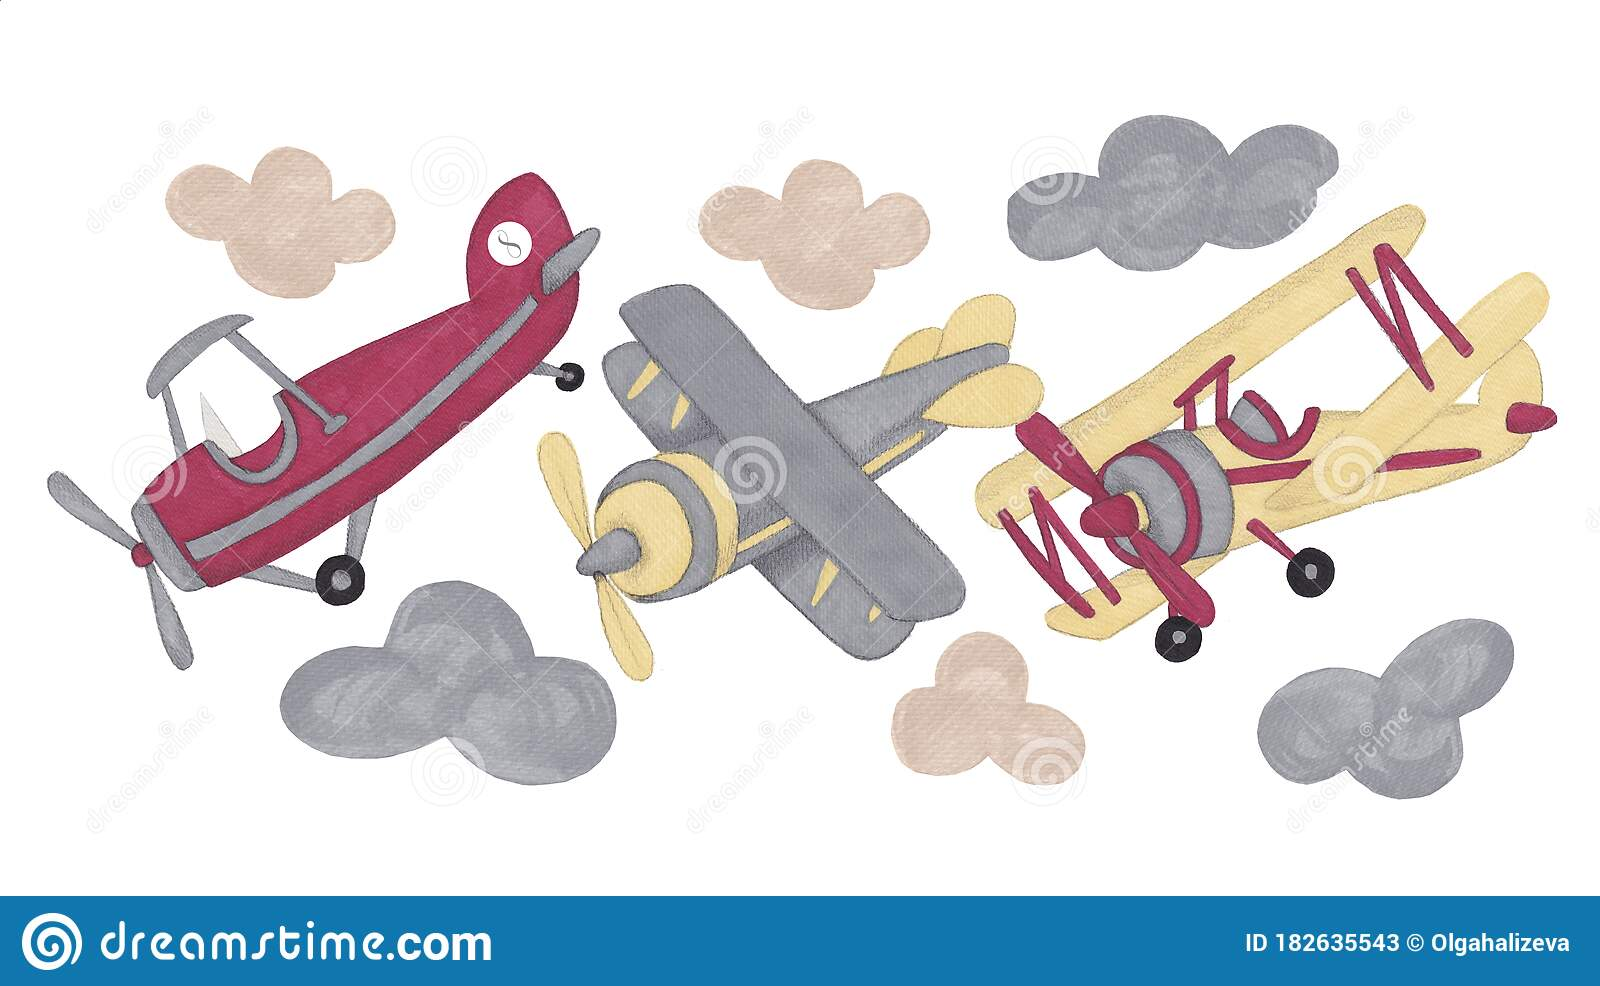 Toy Airplane Clipart Airplane Clip Art Vintage Airplanes Biplane Clipart Isolated On White Background Stock Image Image Of Aircraft Childhood 182635543